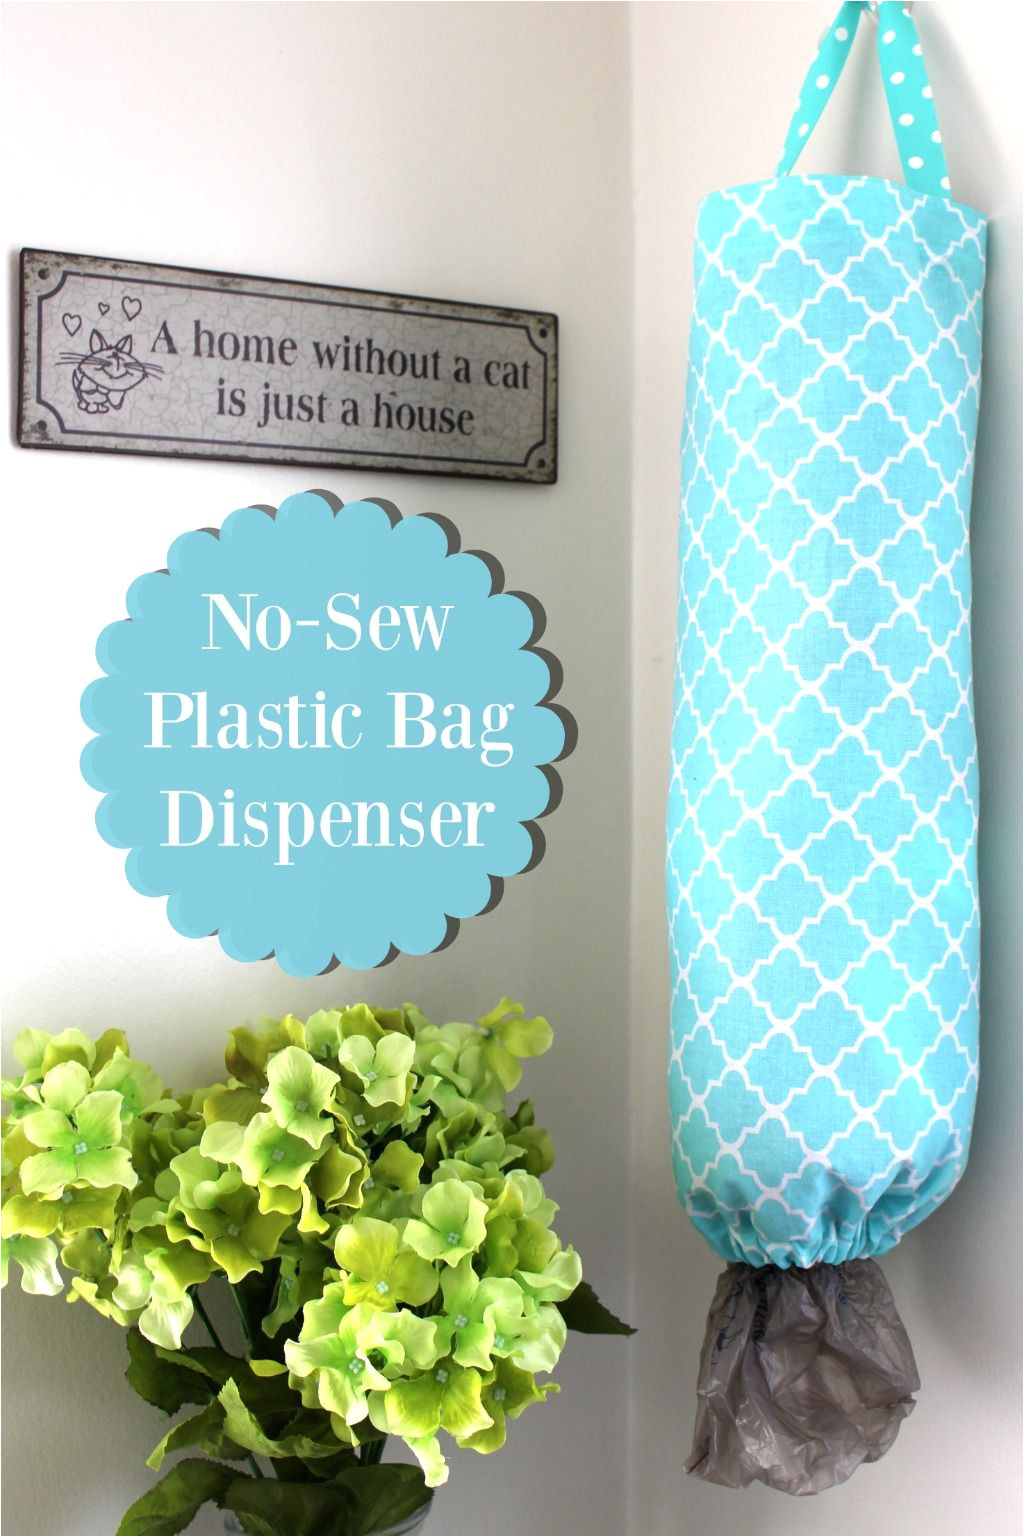 learn how to make your own diy no sew plastic bag dispenser on the blog